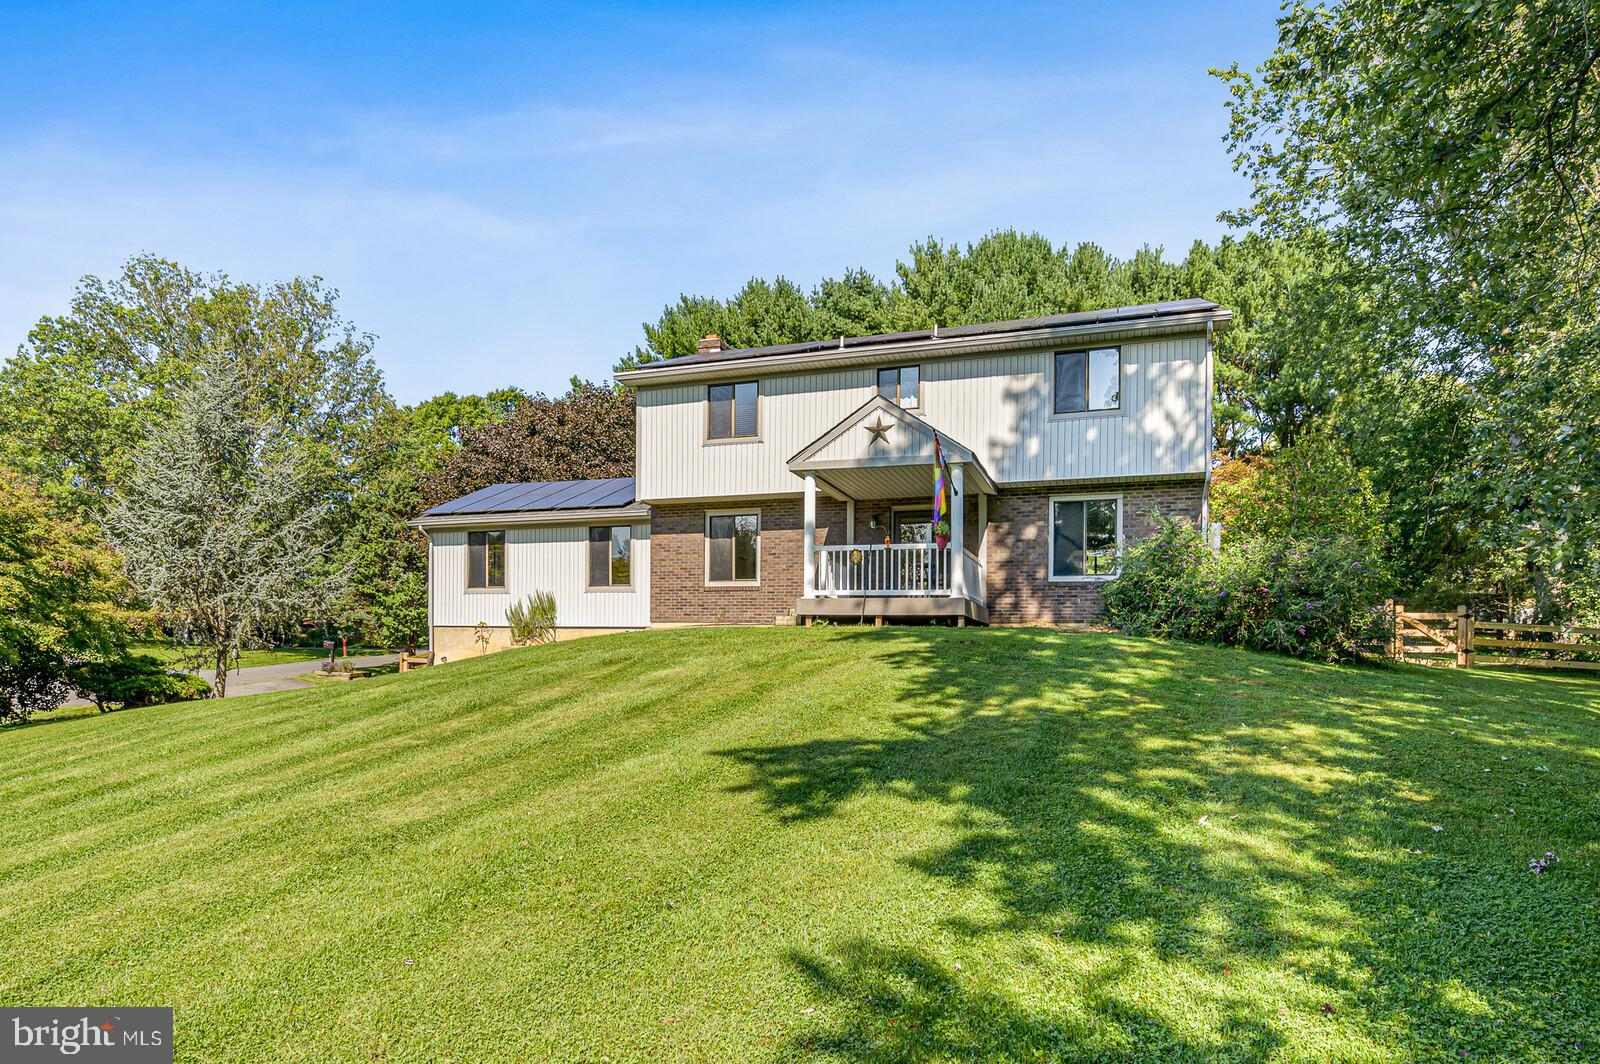 This beautiful 4 bedroom, 2.5 bath home in the Tara neighborhood of Fair Hill, MD is located the cor